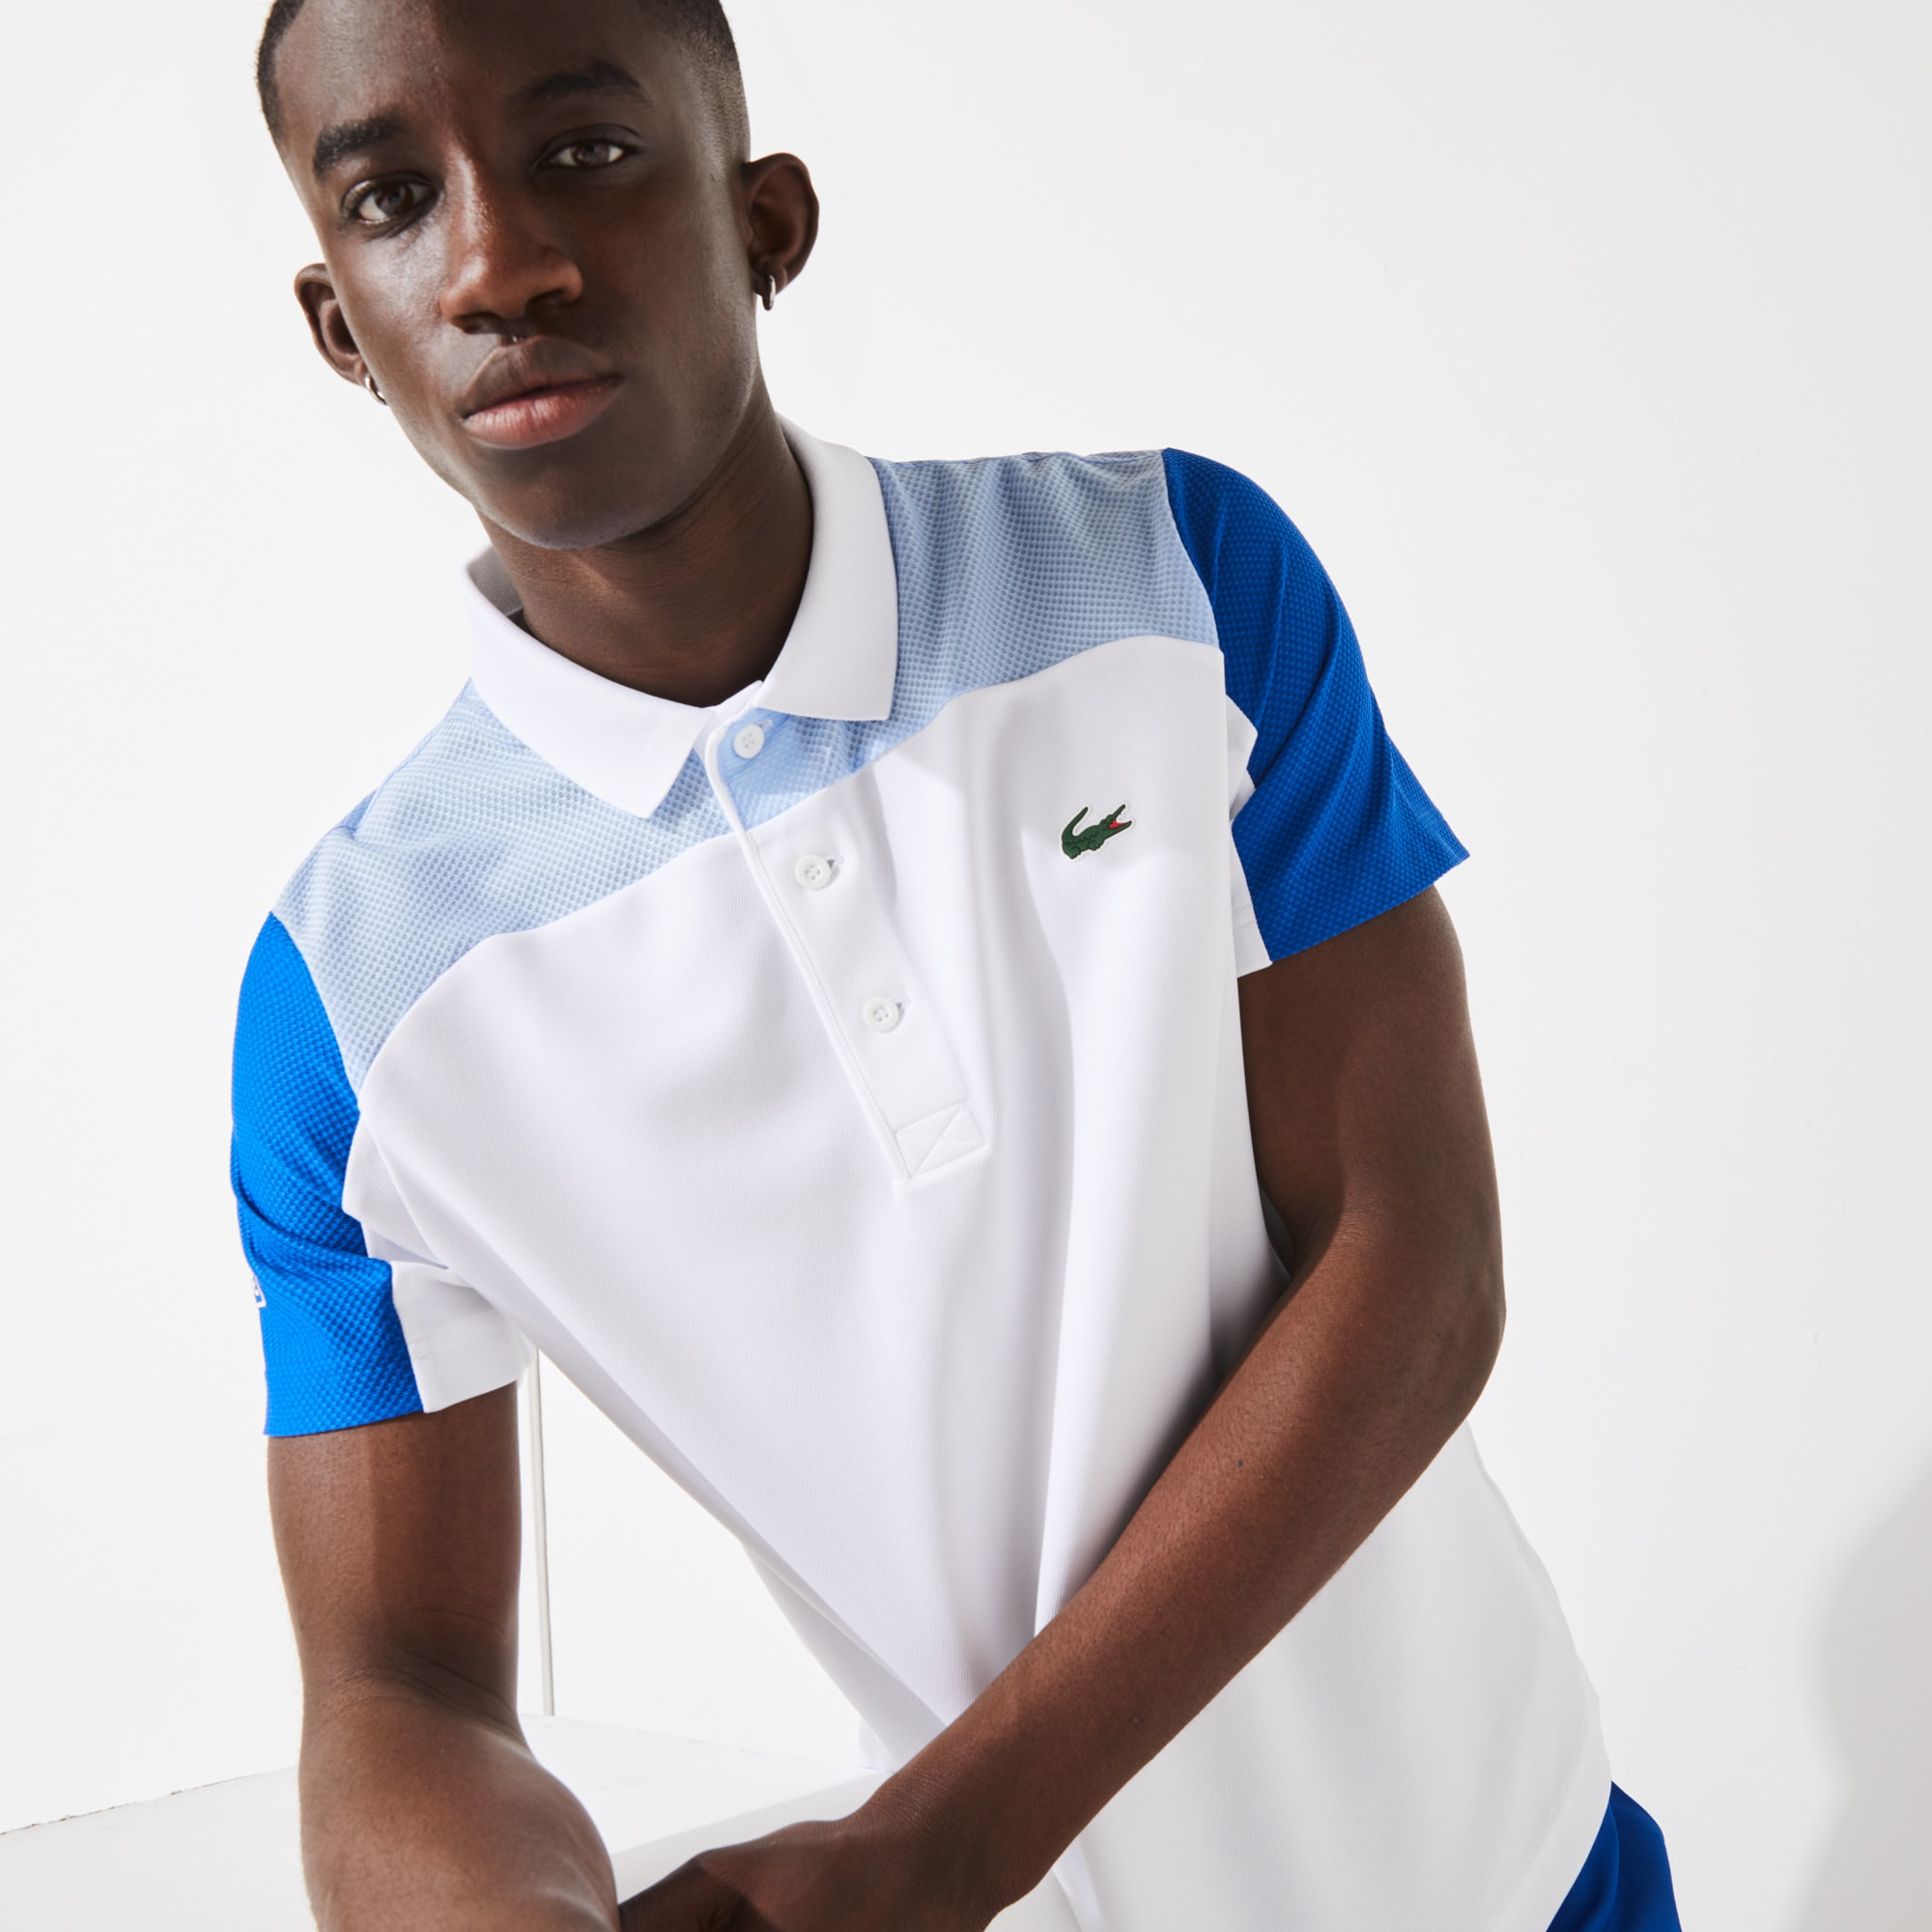 라코스테 Lacoste Men's SPORT Breathable Colorblock Tennis Polo